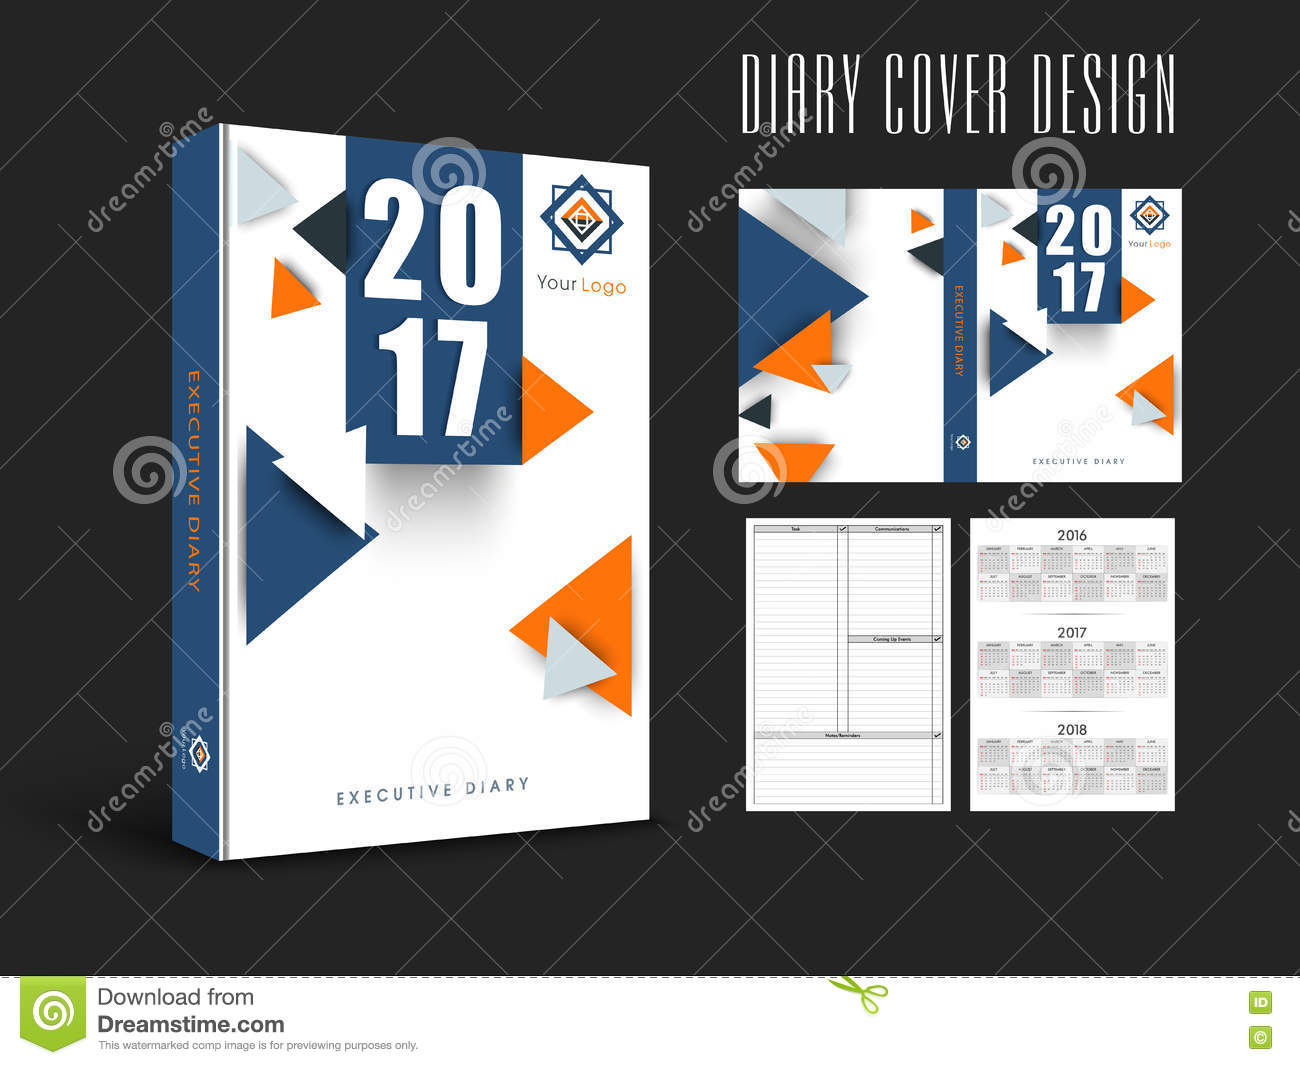 Diary Book Cover Design : Diary cover design or template layout stock illustration